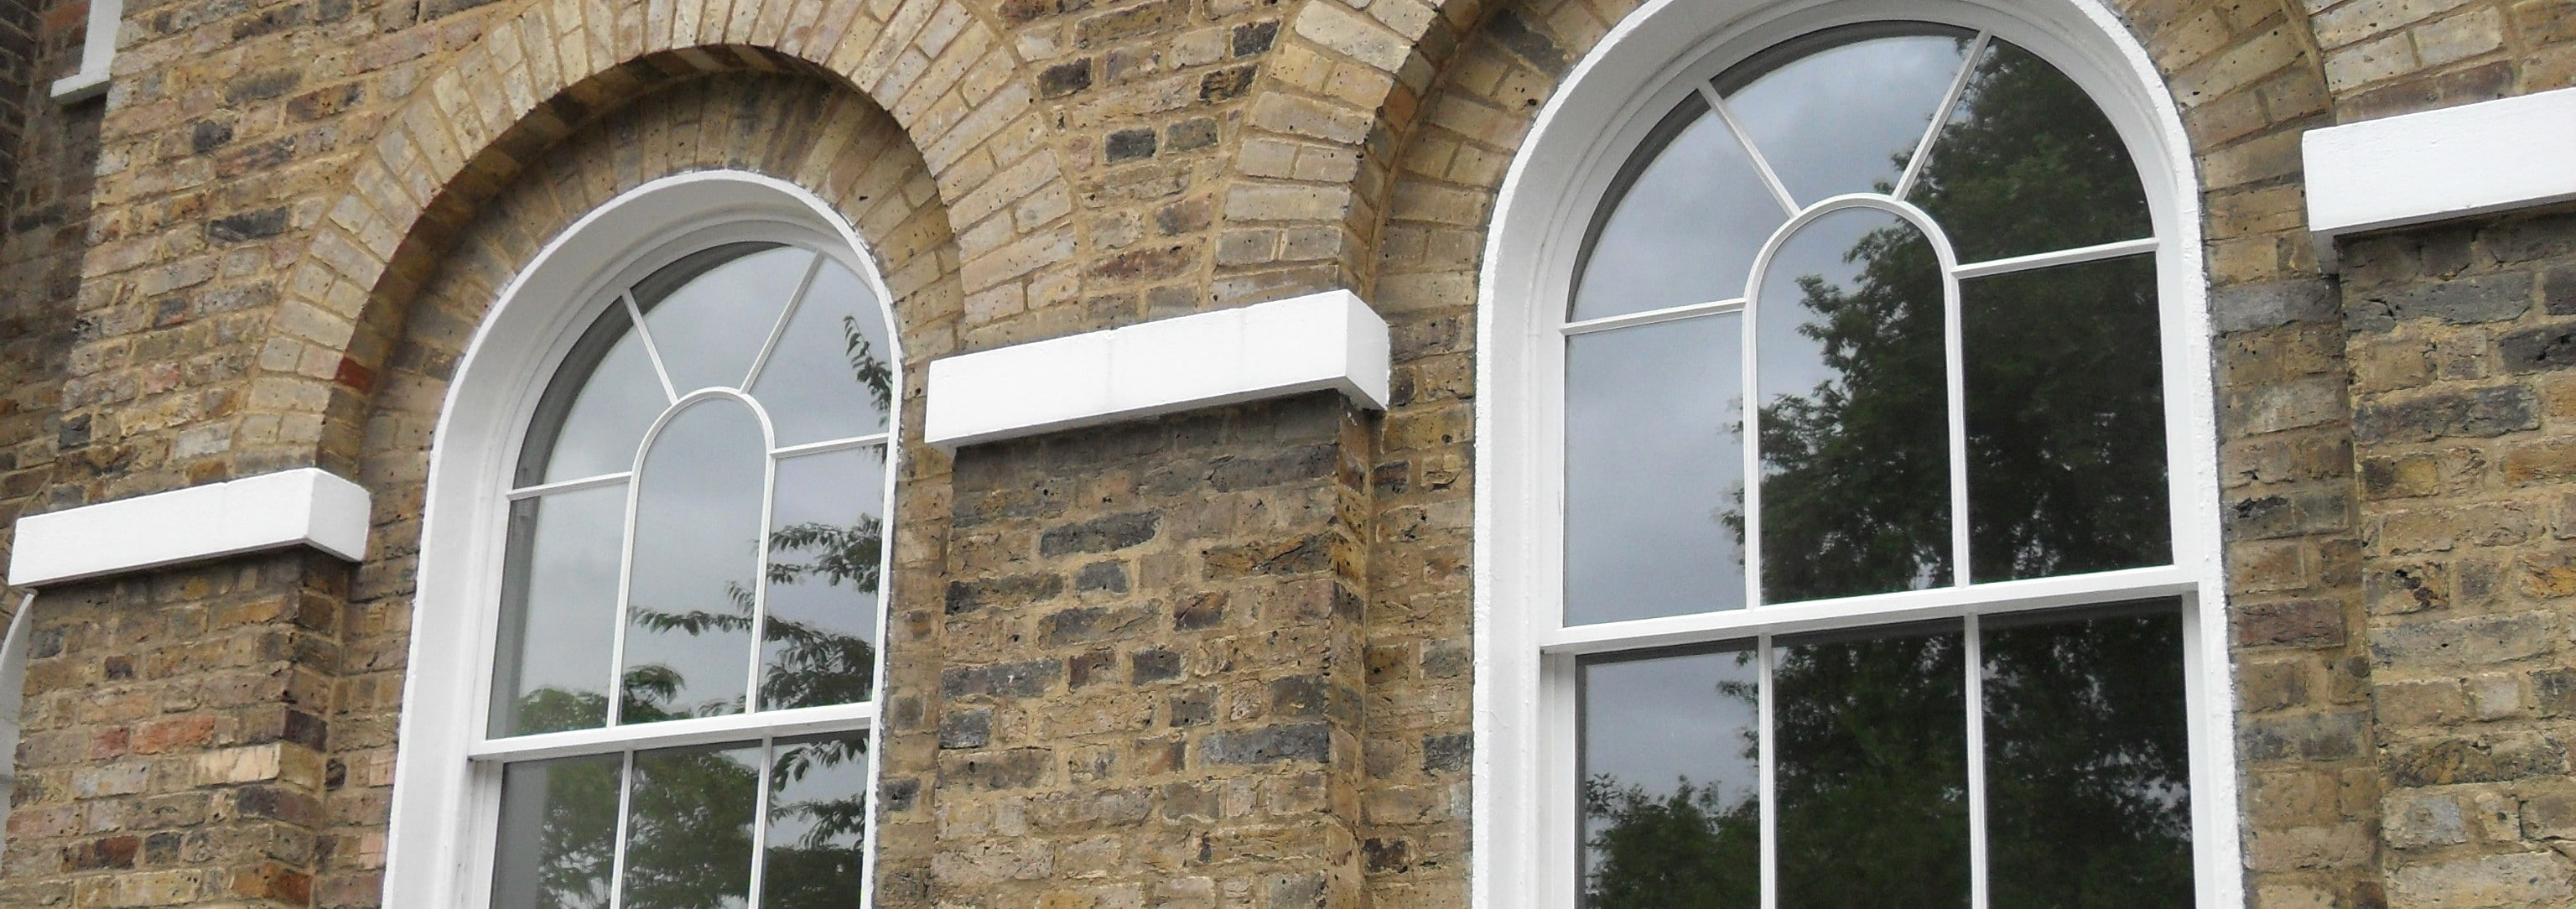 Slimline double glazing in listed building